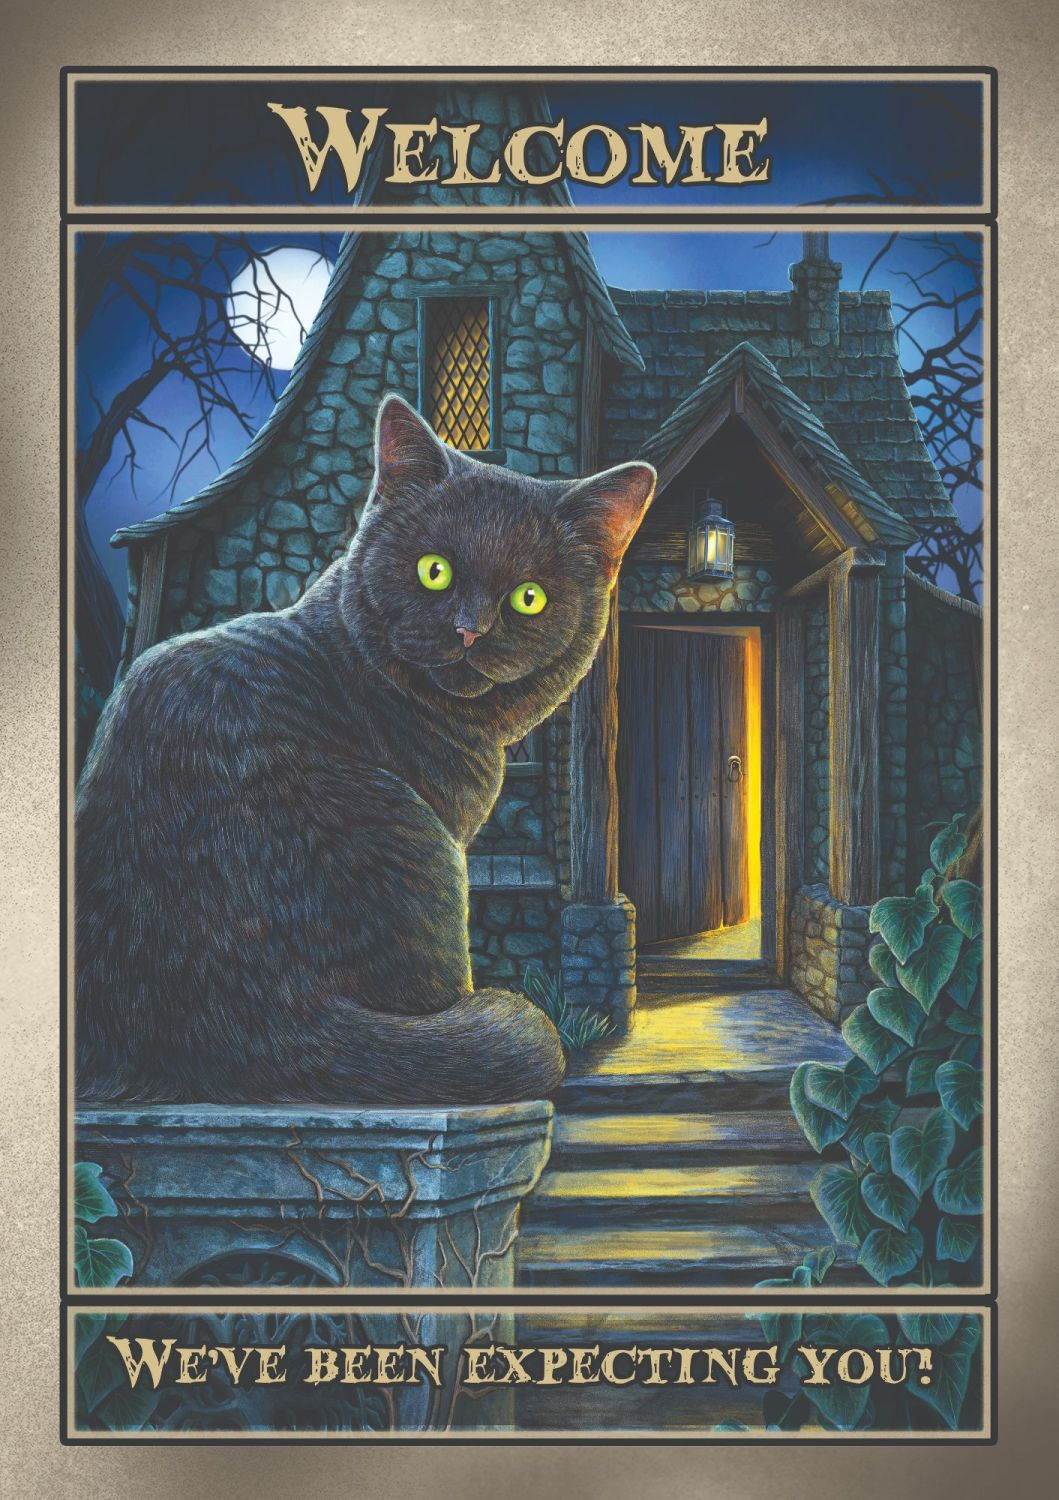 Welcome A2 singed Lisa Parprint featuring spooky witches house